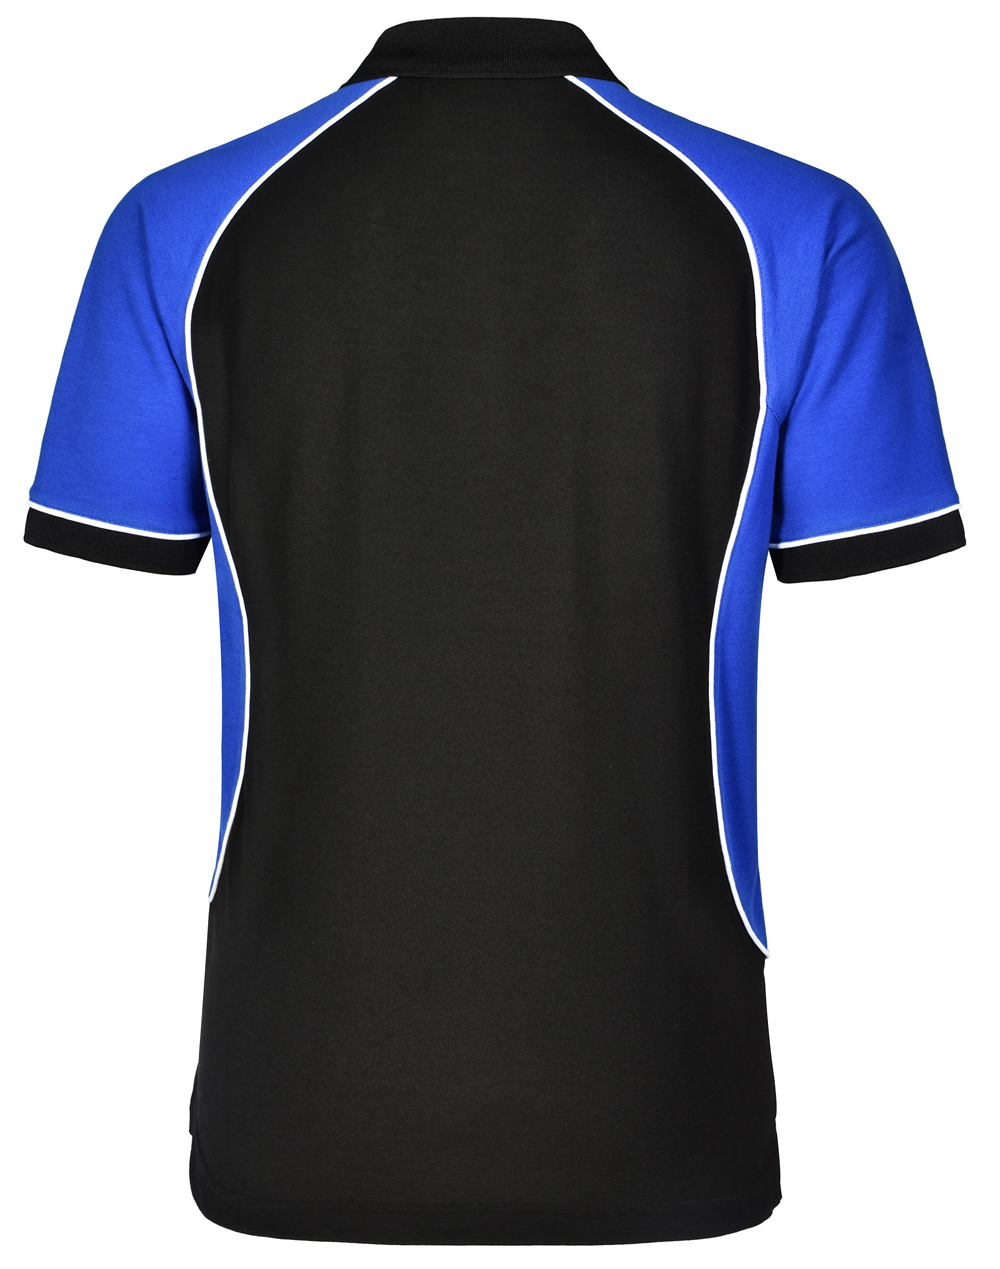 https://s3-ap-southeast-1.amazonaws.com/ws-imgs/POLOSHIRTS/PS77_BlackWhiteRoyal_Back_l.jpg